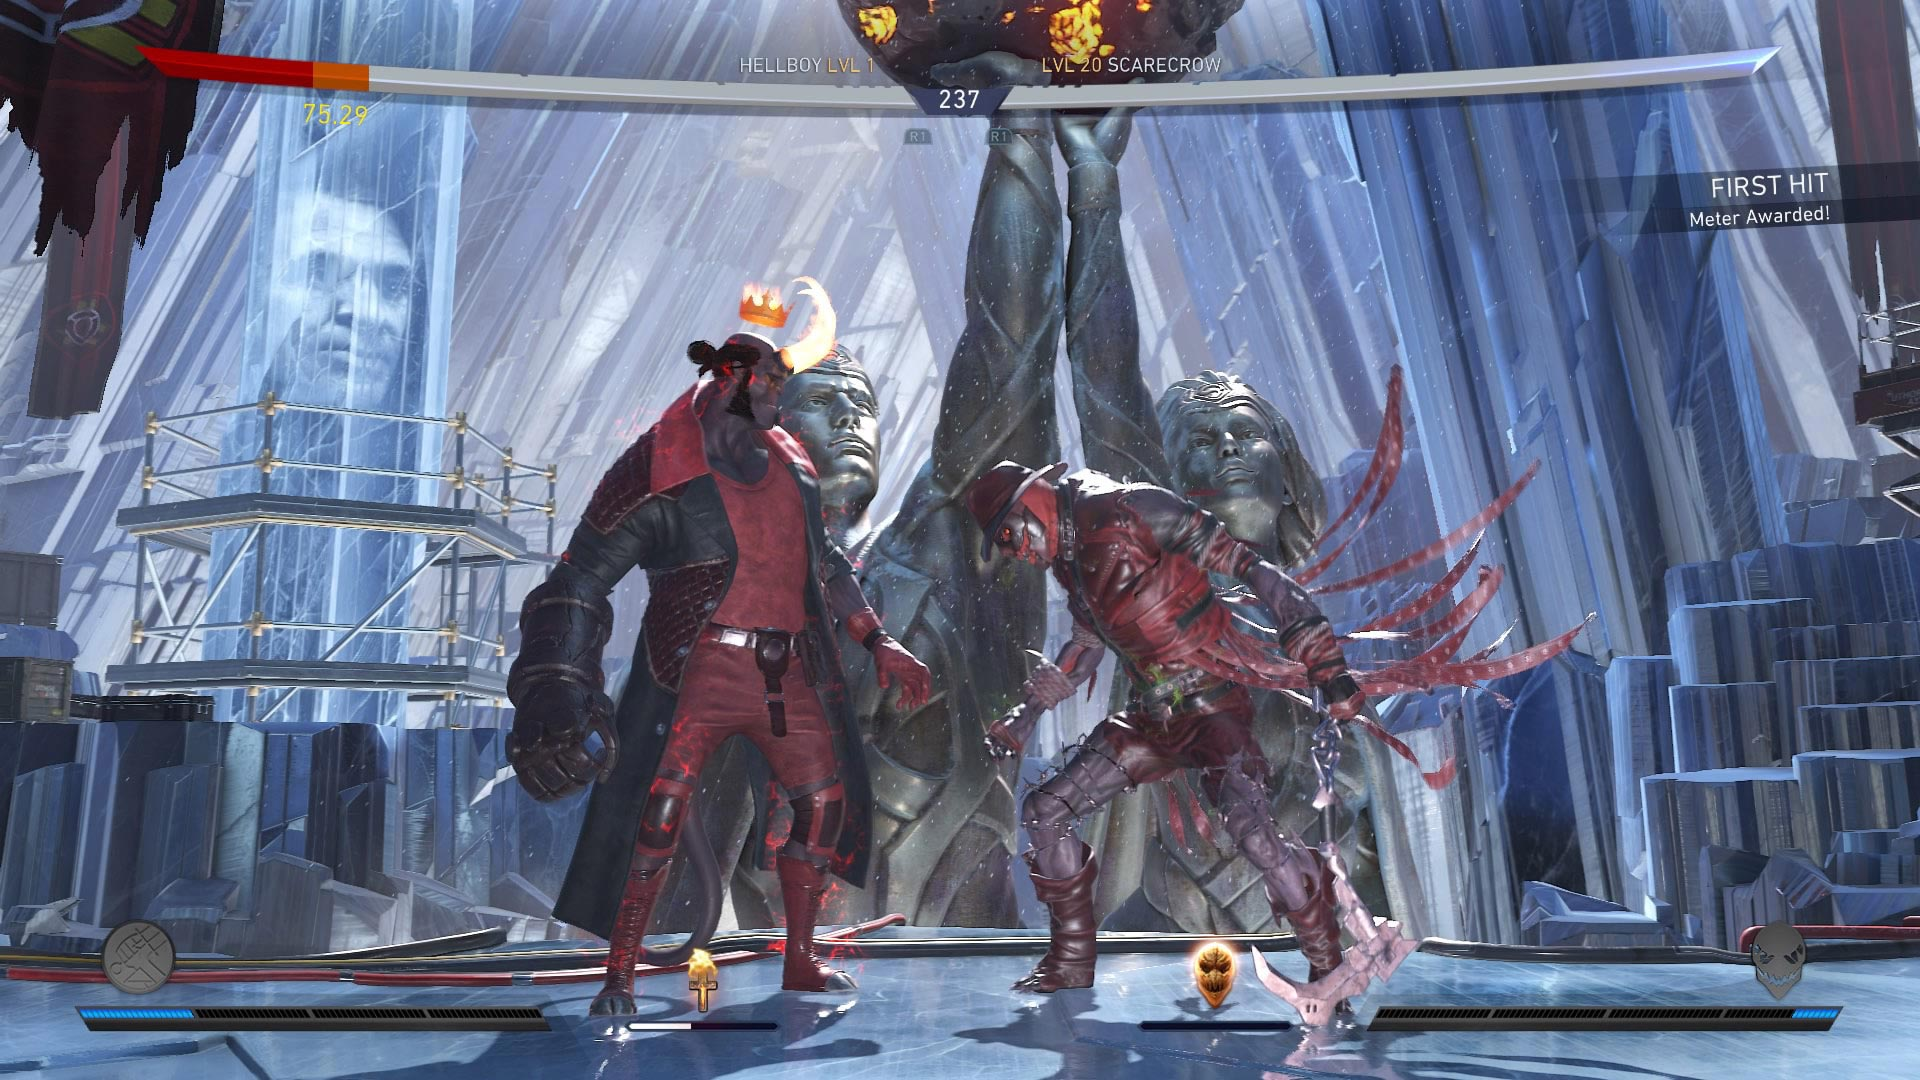 Hellboy in Injustice 2 4 out of 9 image gallery